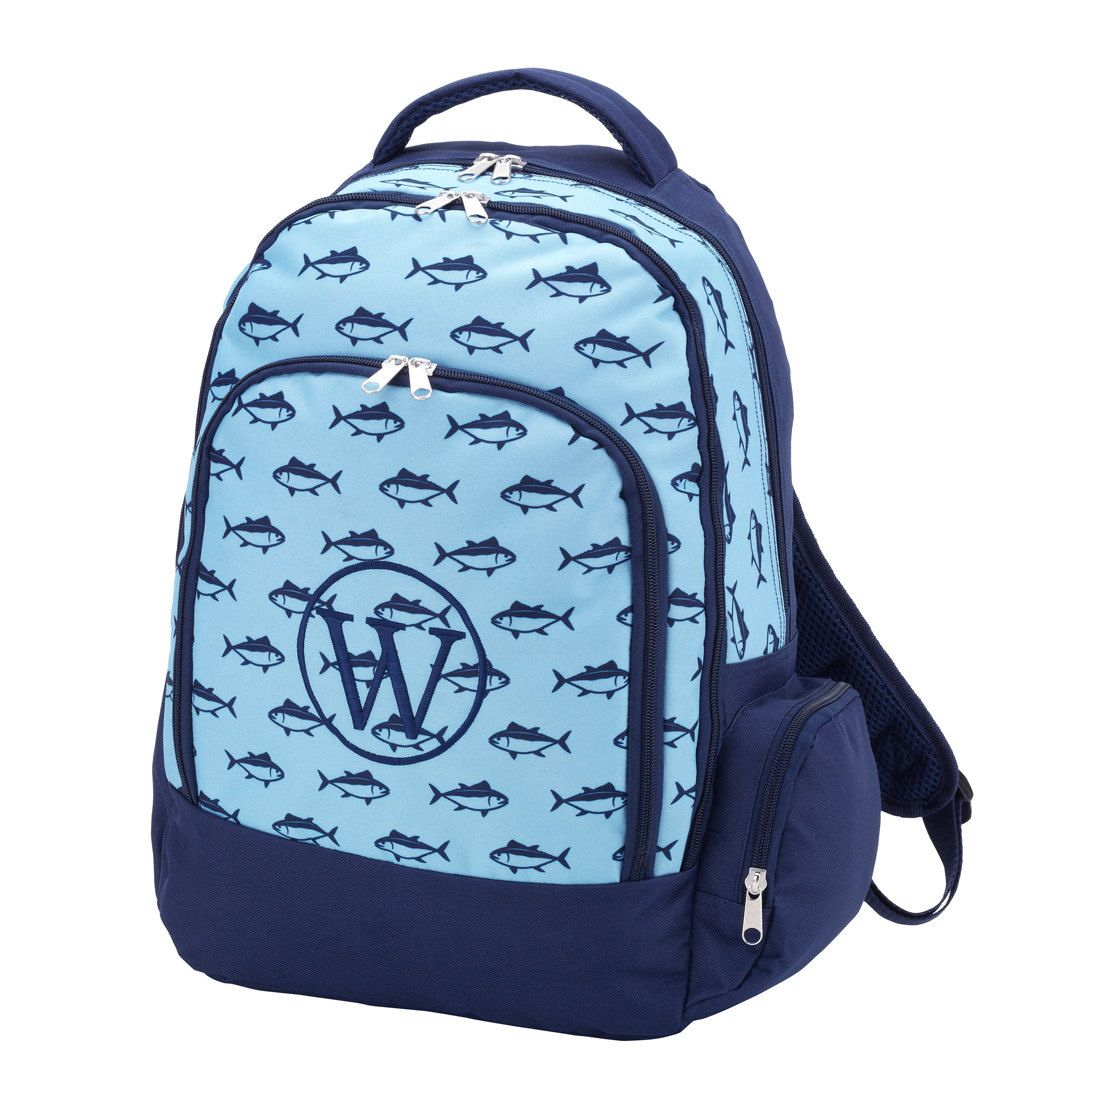 Backpacks In Whale Sailboat Fins And Piper Designs Perfect Gift